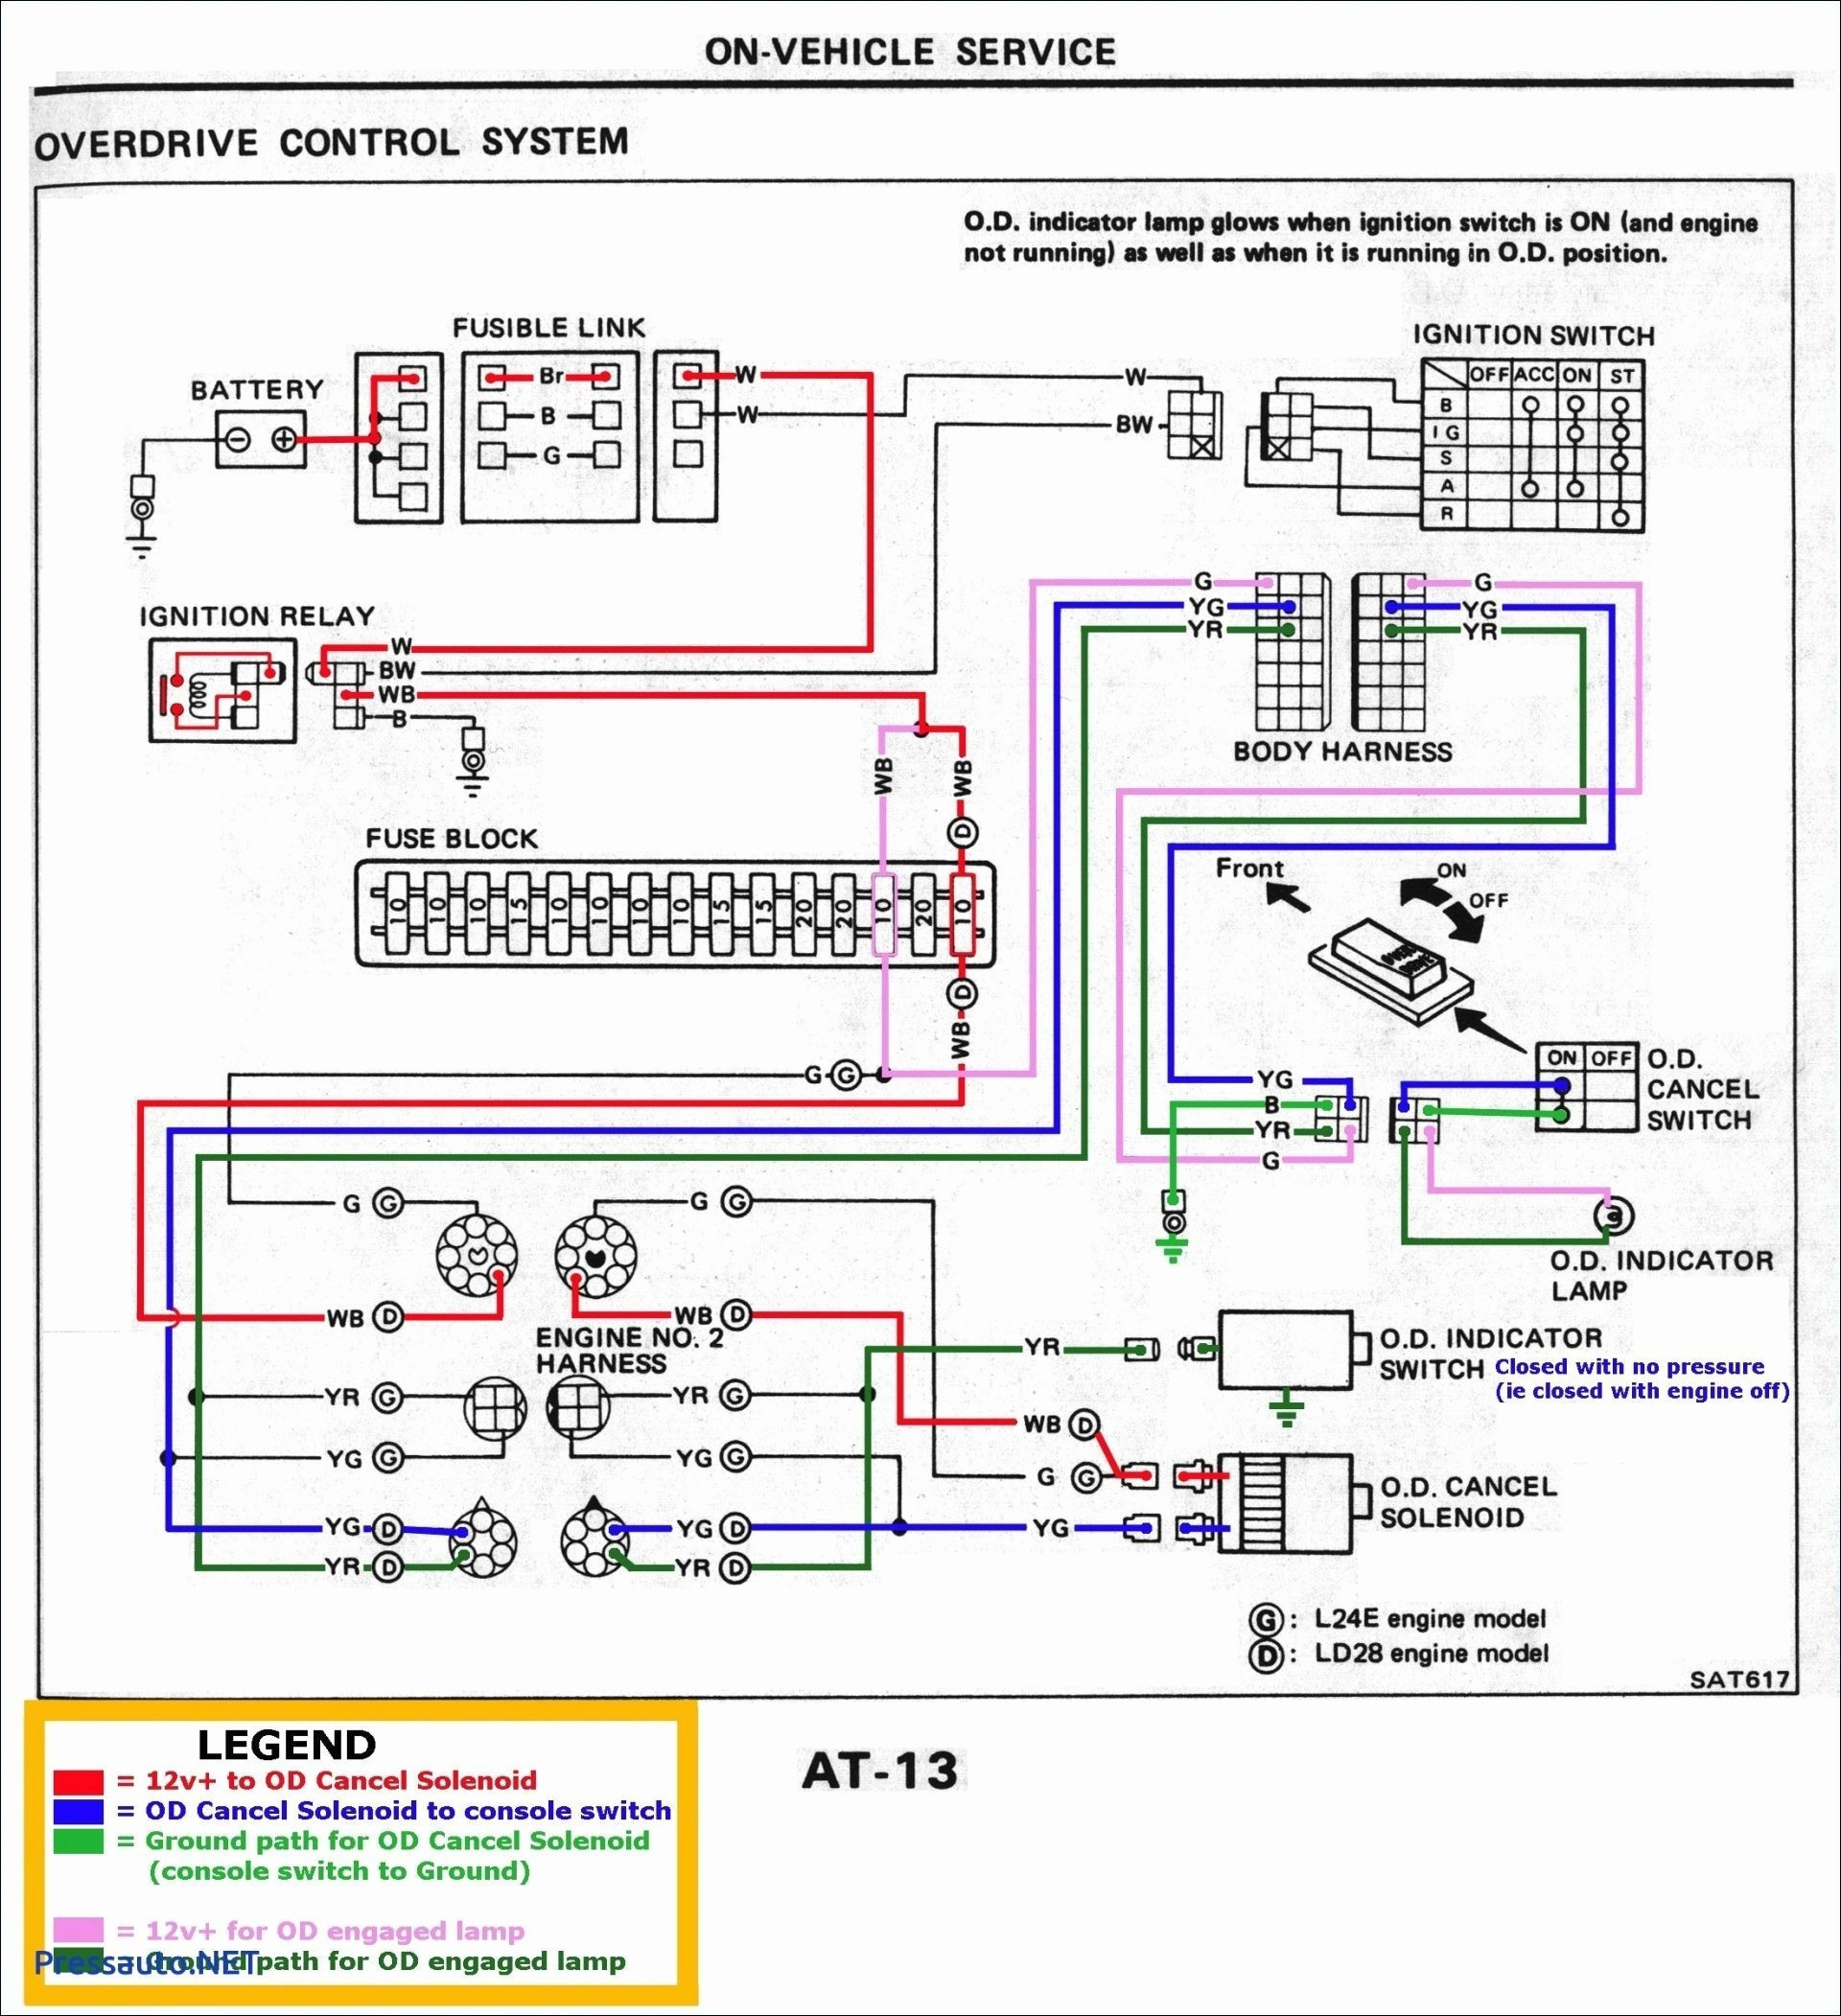 Gas Pump Diagram Gas Furnace Wiring Diagram Valid Best Suburban Gas Furnace Wiring Of Gas Pump Diagram Well Known Water Pump Installation Diagram Rd03 – Documentaries for